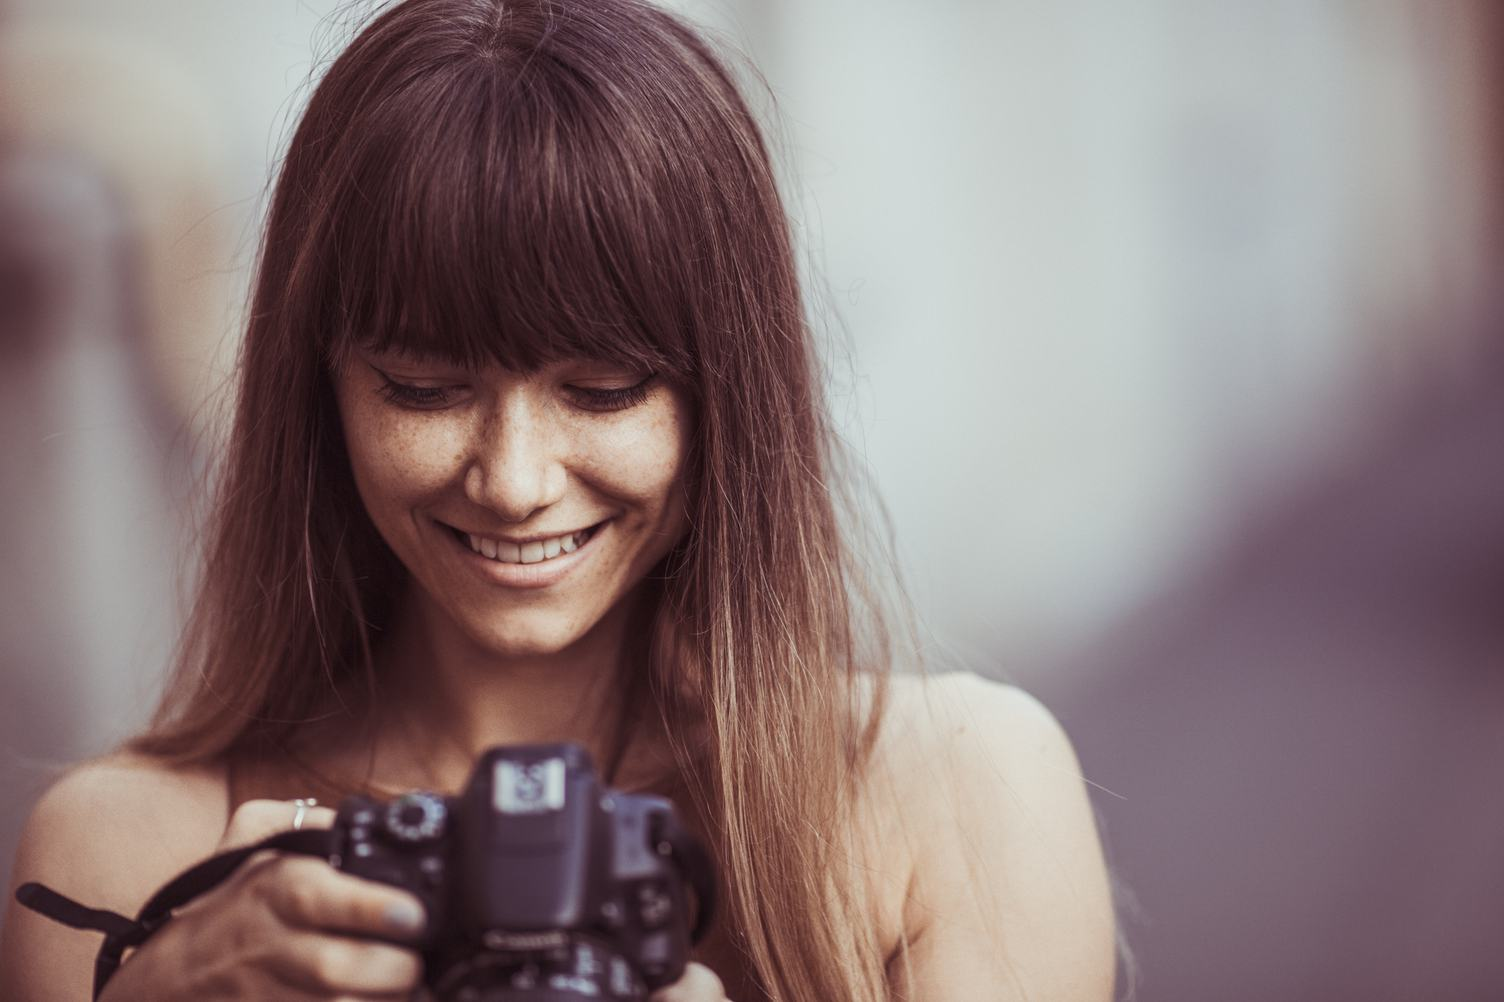 Pretty Woman Is Browse Photos on Her DSLR Camera